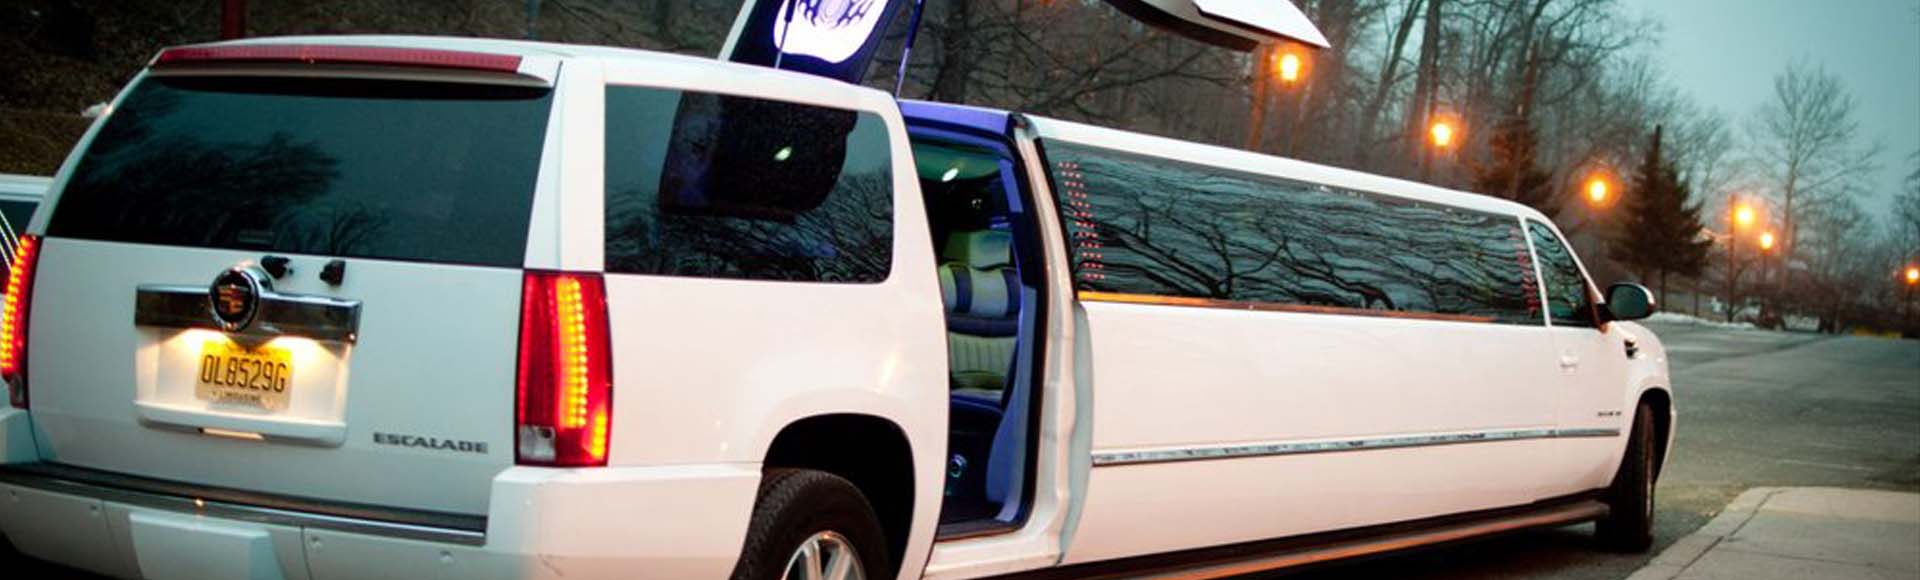 Escalade Limo NJ